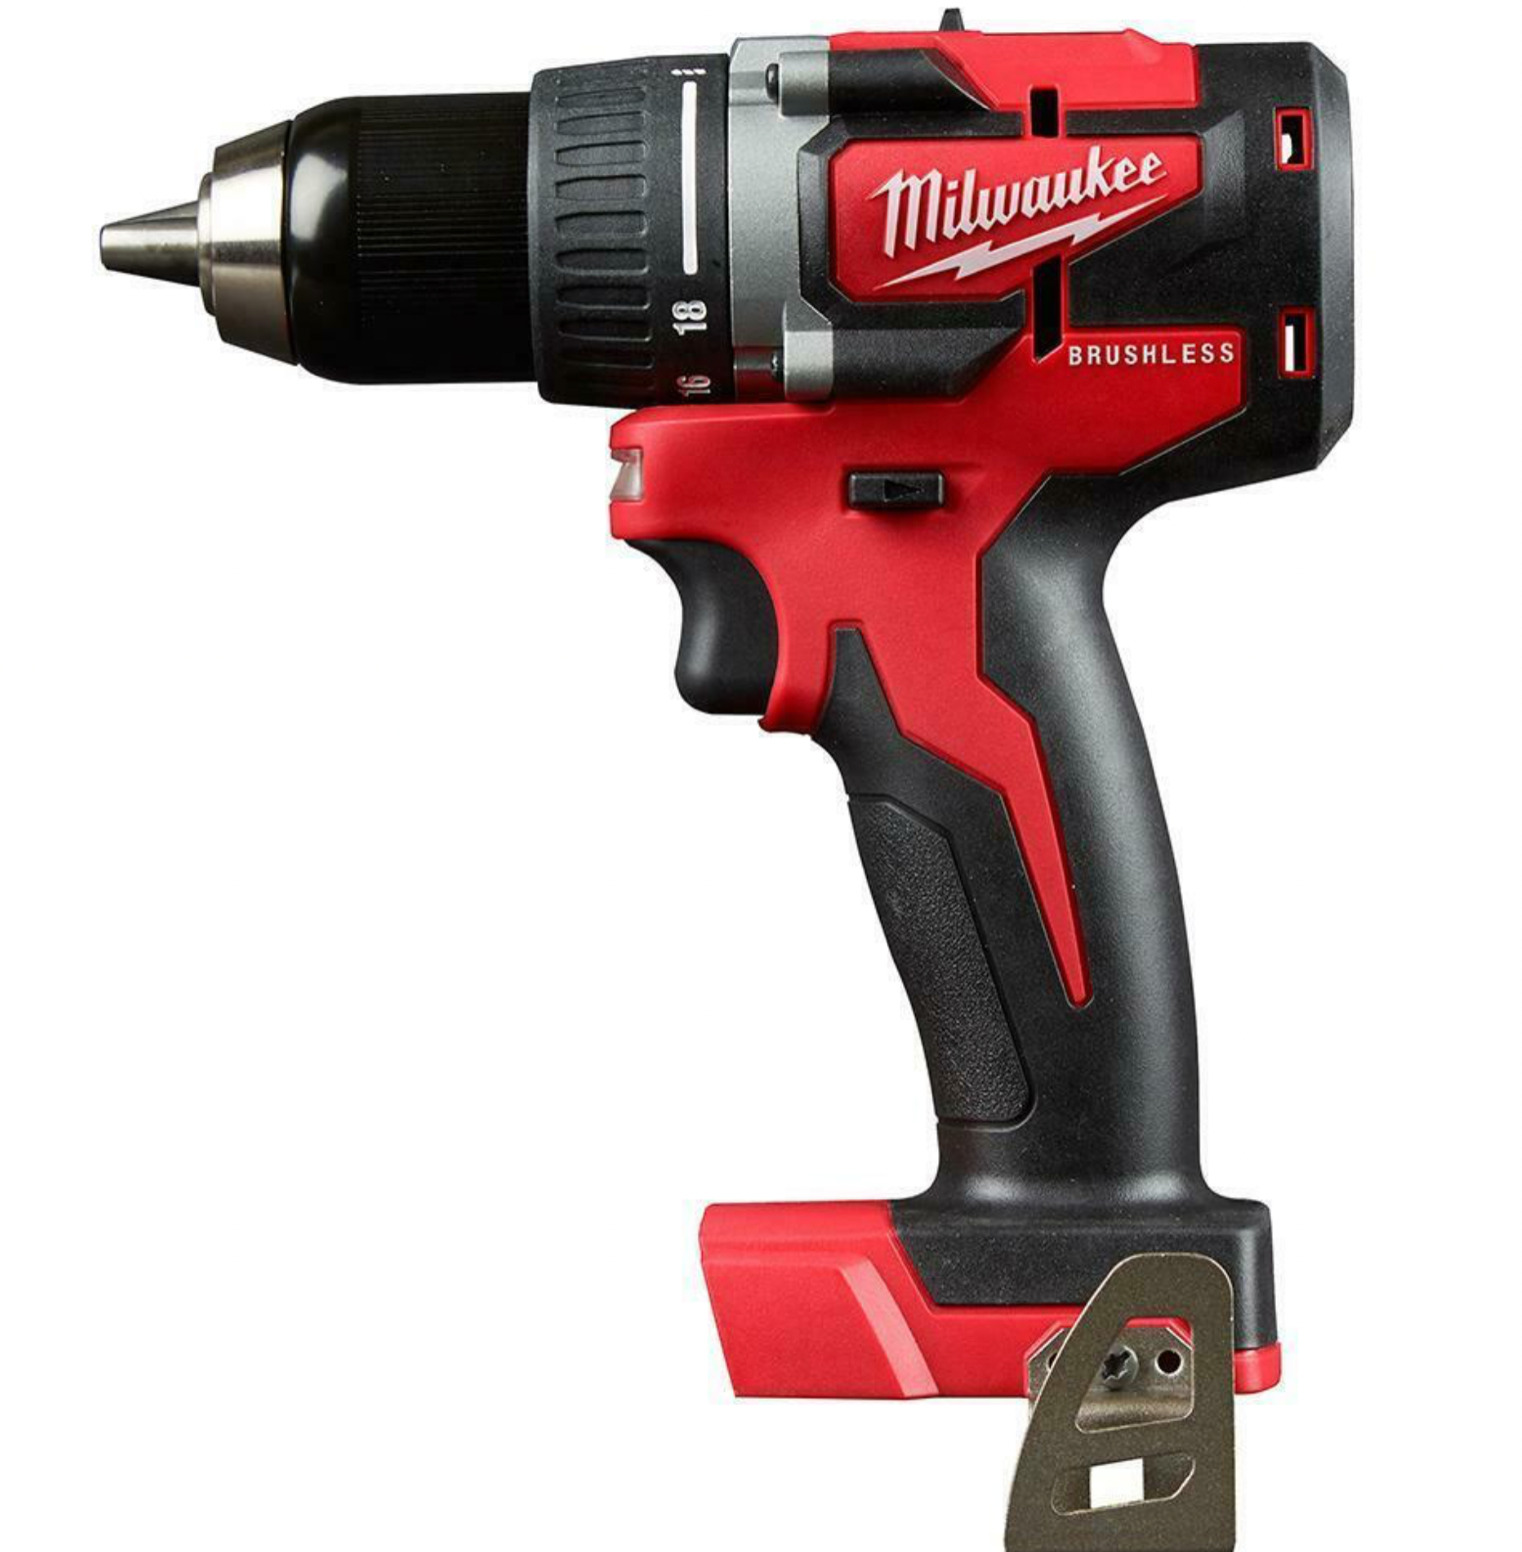 Milwaukee 2801-20 M18 18V 1/2-Inch LED Brushless Drill Driver - Bare Tool. Available Now for 89.90